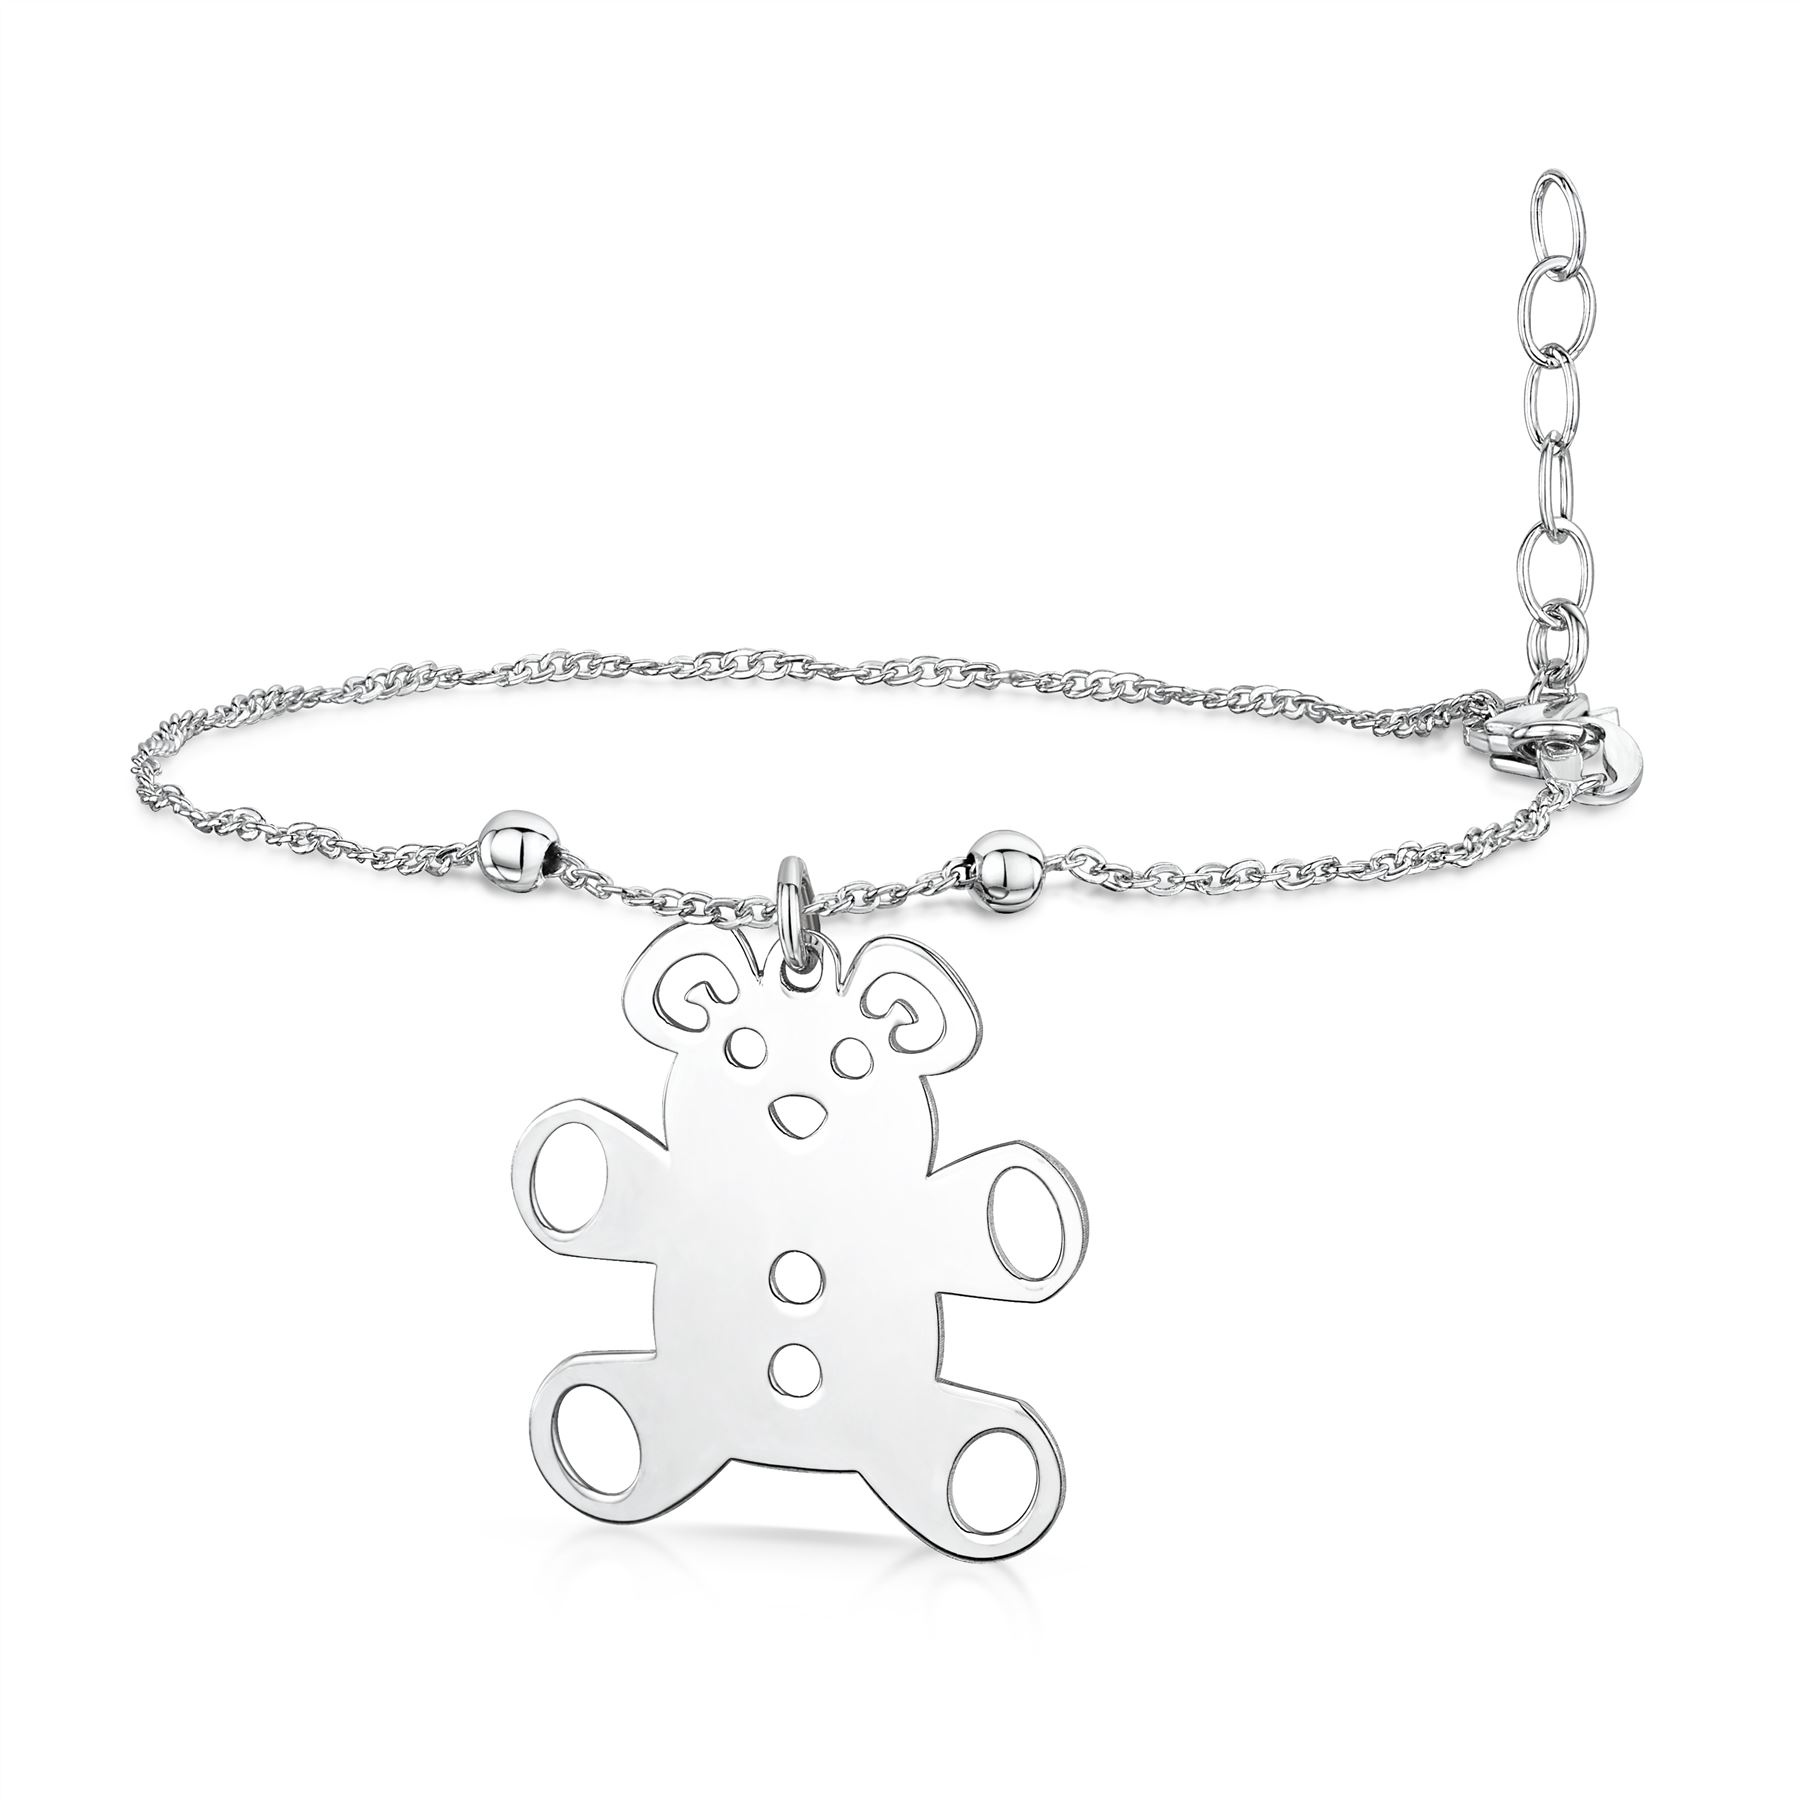 Amberta-Jewelry-925-Sterling-Silver-Adjustable-Anklet-for-Women-Made-in-Italy miniature 21